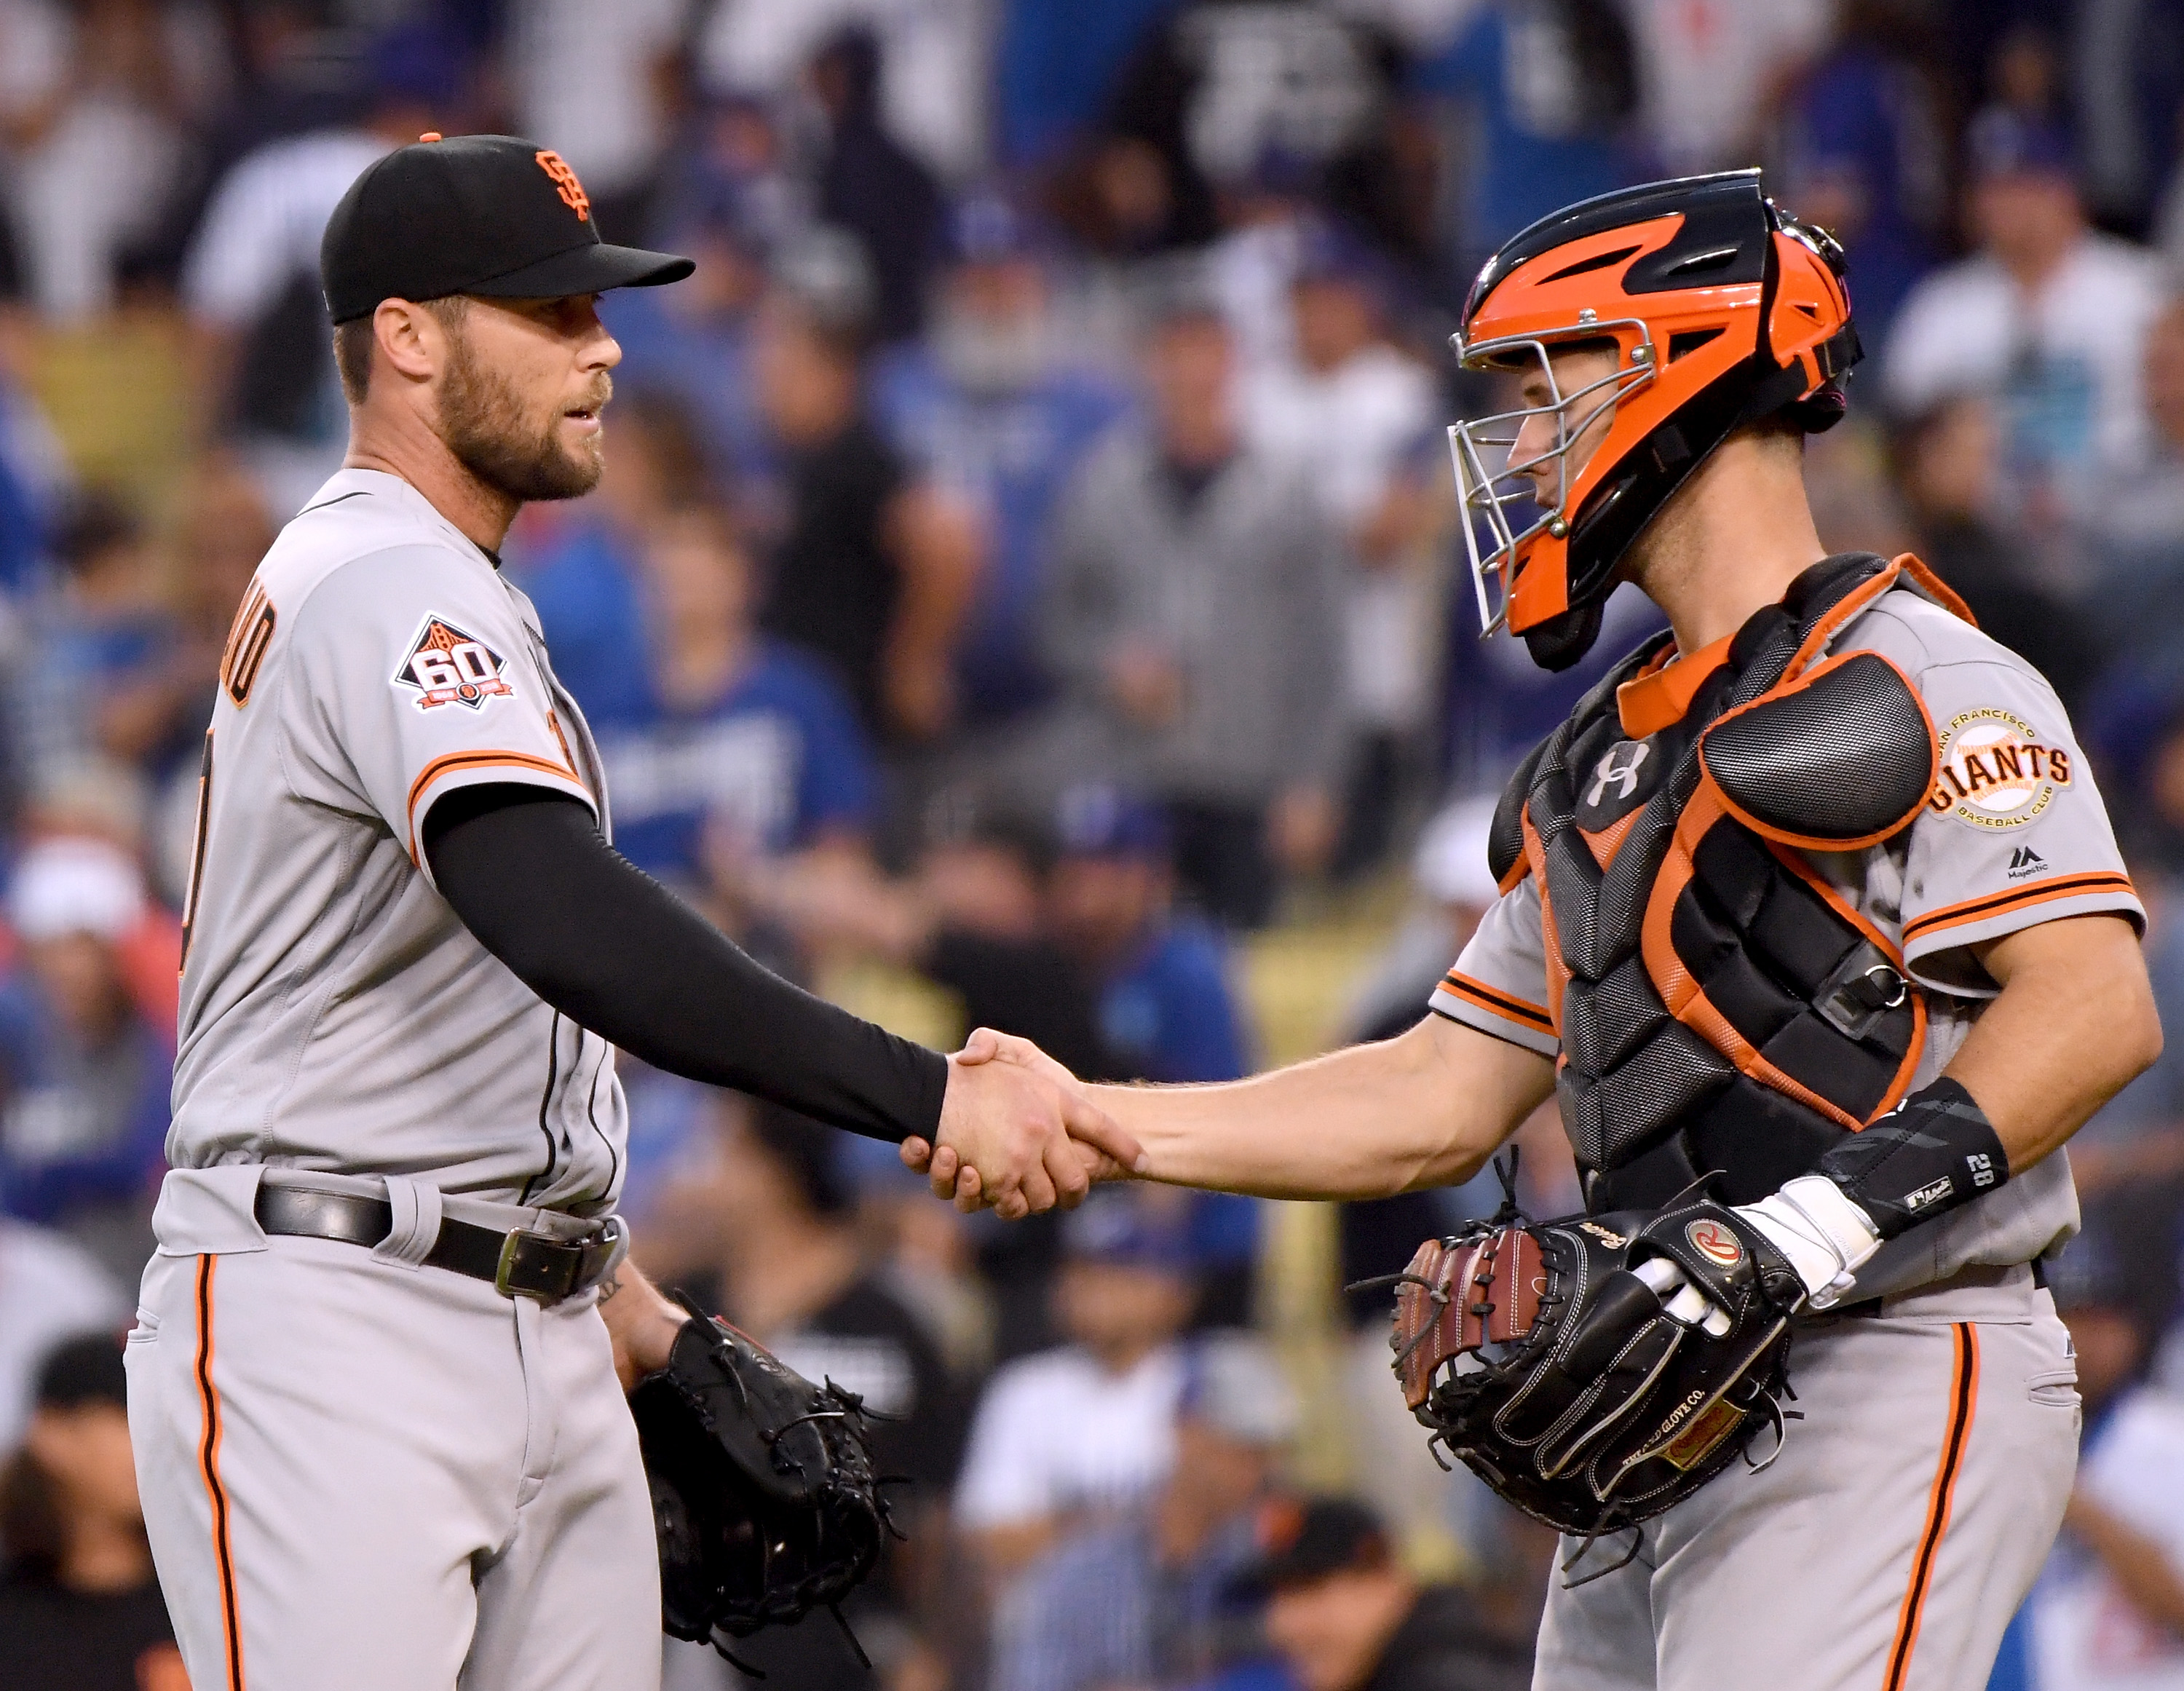 Hunter Strickland likely to close for Giants with Melancon on DL